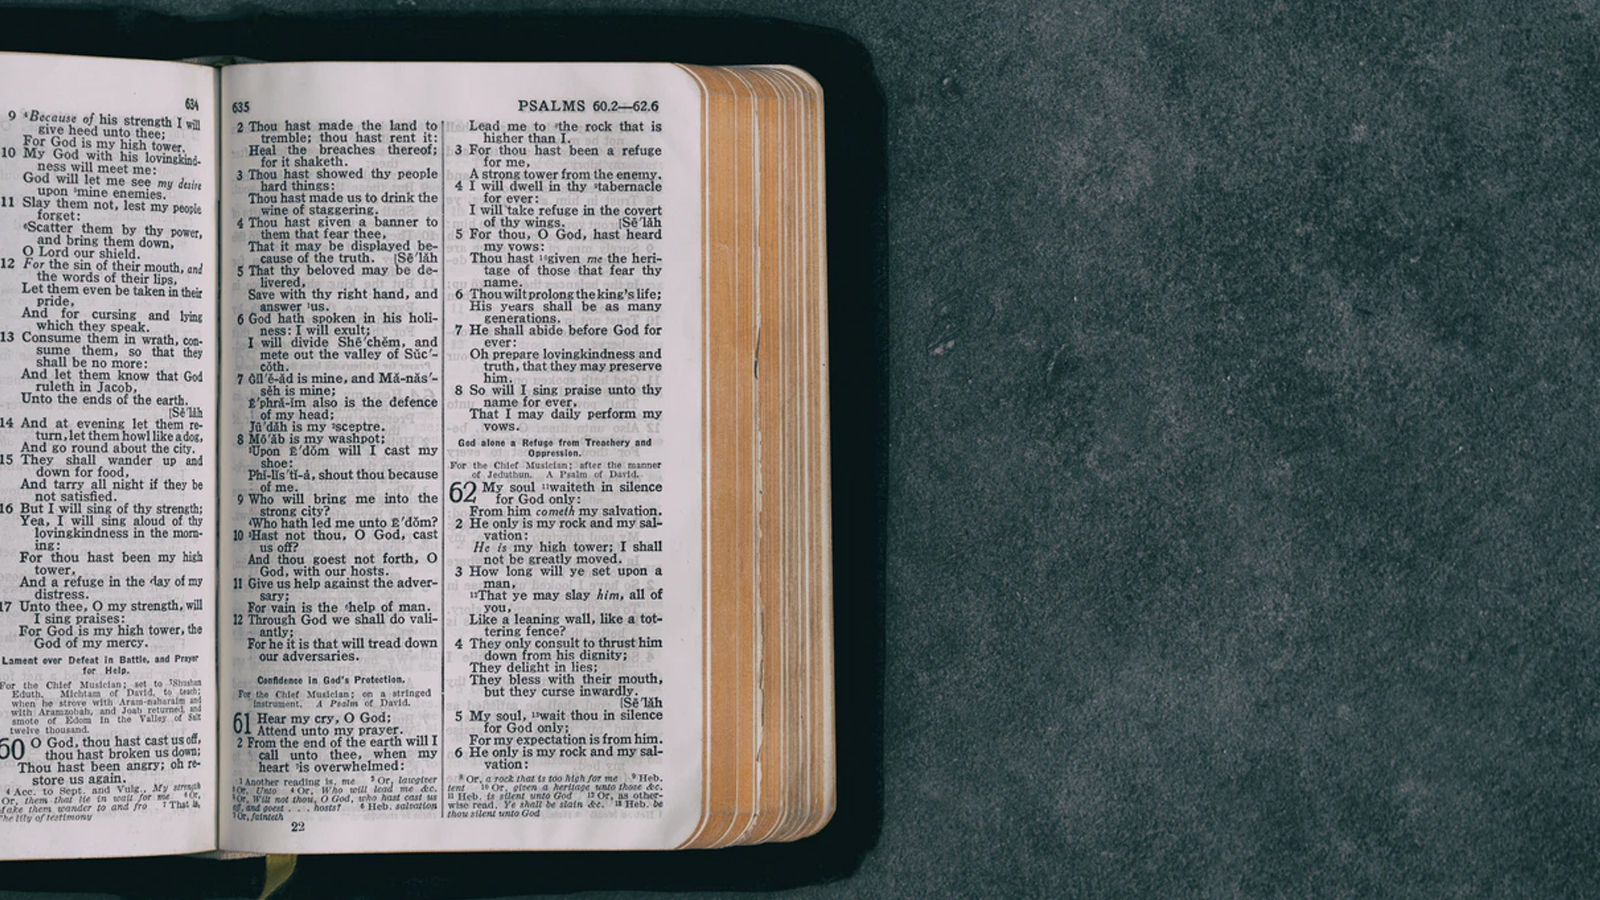 What Do We Mean When We Say the Bible is Inerrant